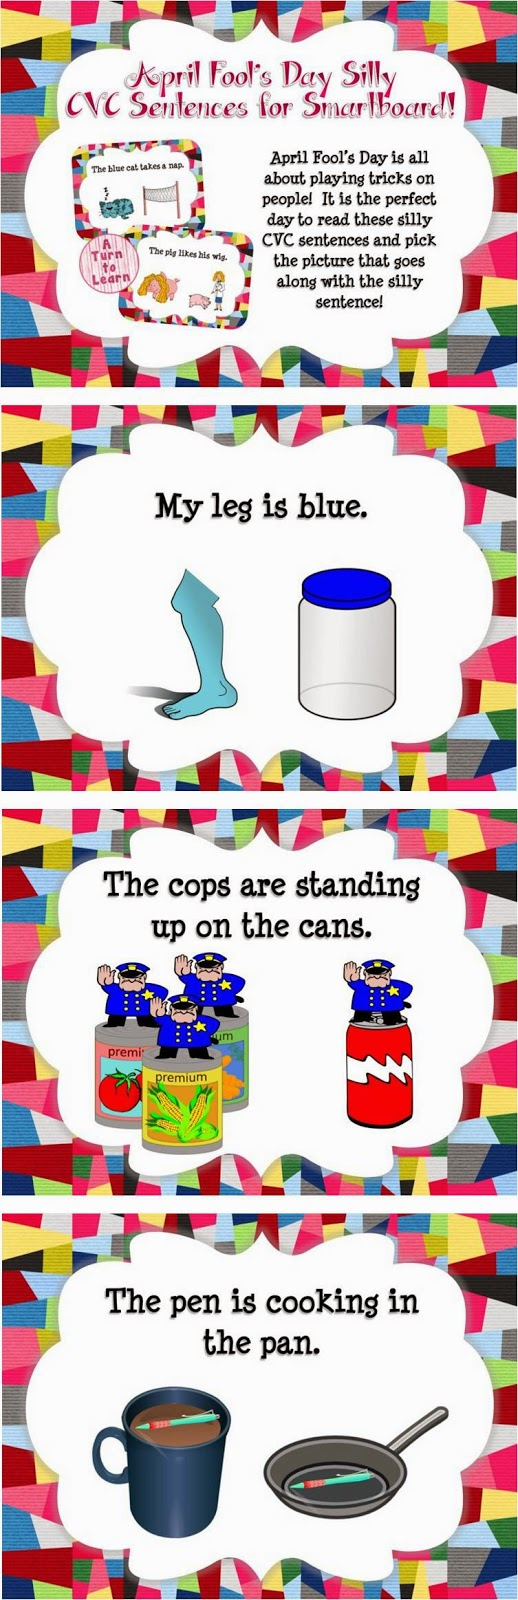 April Fool's Day Silly CVC Sentences (A No-Prep Game for the Smartboard!)